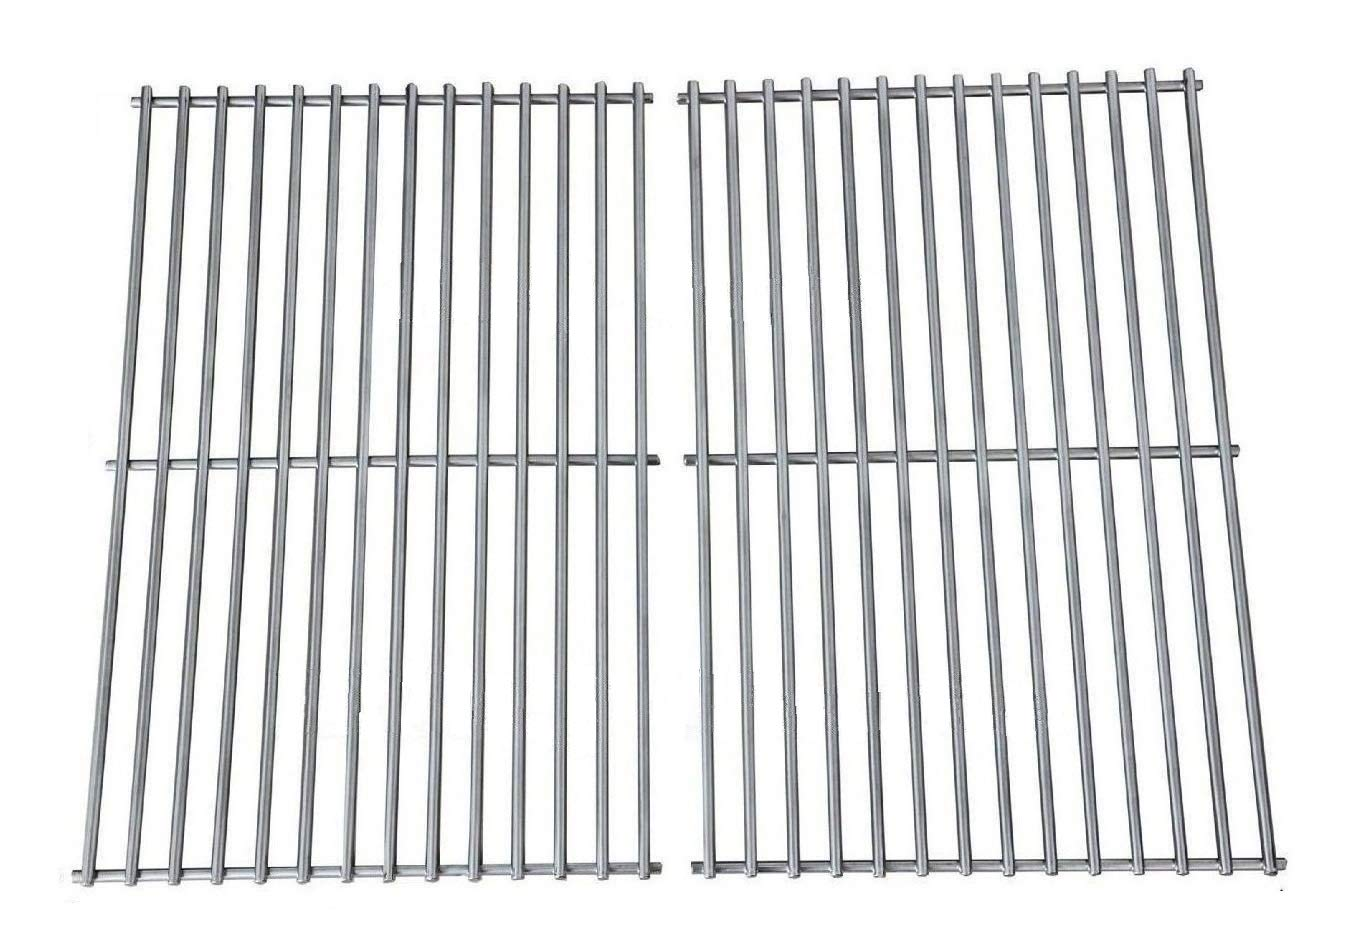 Hongso Grill Grates, Durable 304 Stainless Steel Solid Rod, 19 1/4 inch Cooking Grid Grates Replacement for Turbo, Charmglow Gas Grill (2 Pieces, SCS612)